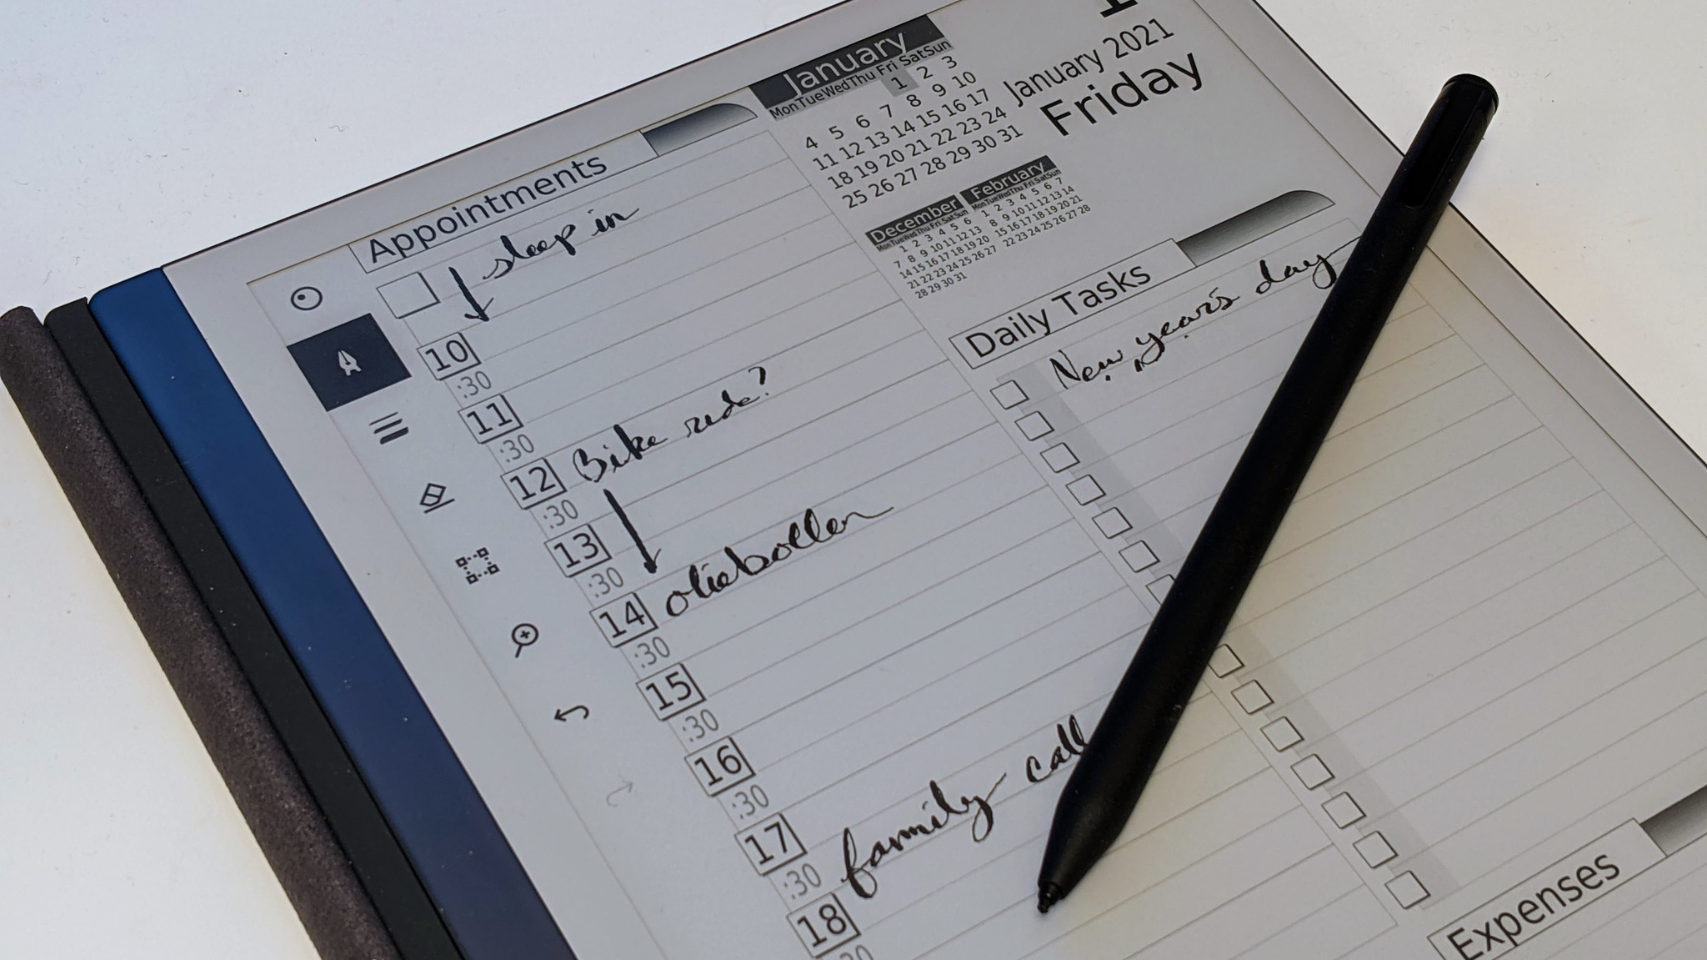 E-Ink screen displaying appointments, daily tasks, and a calendar overview